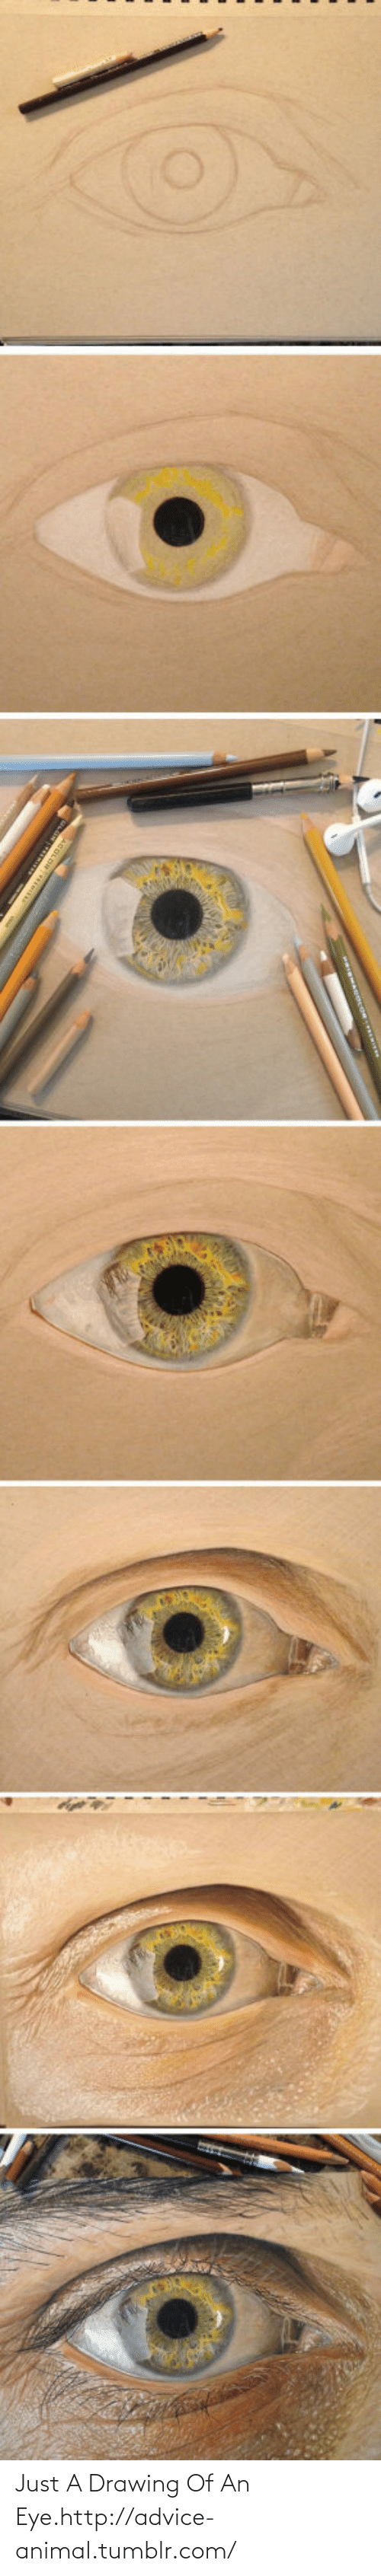 Drawing Of An: Just A Drawing Of An Eye.http://advice-animal.tumblr.com/